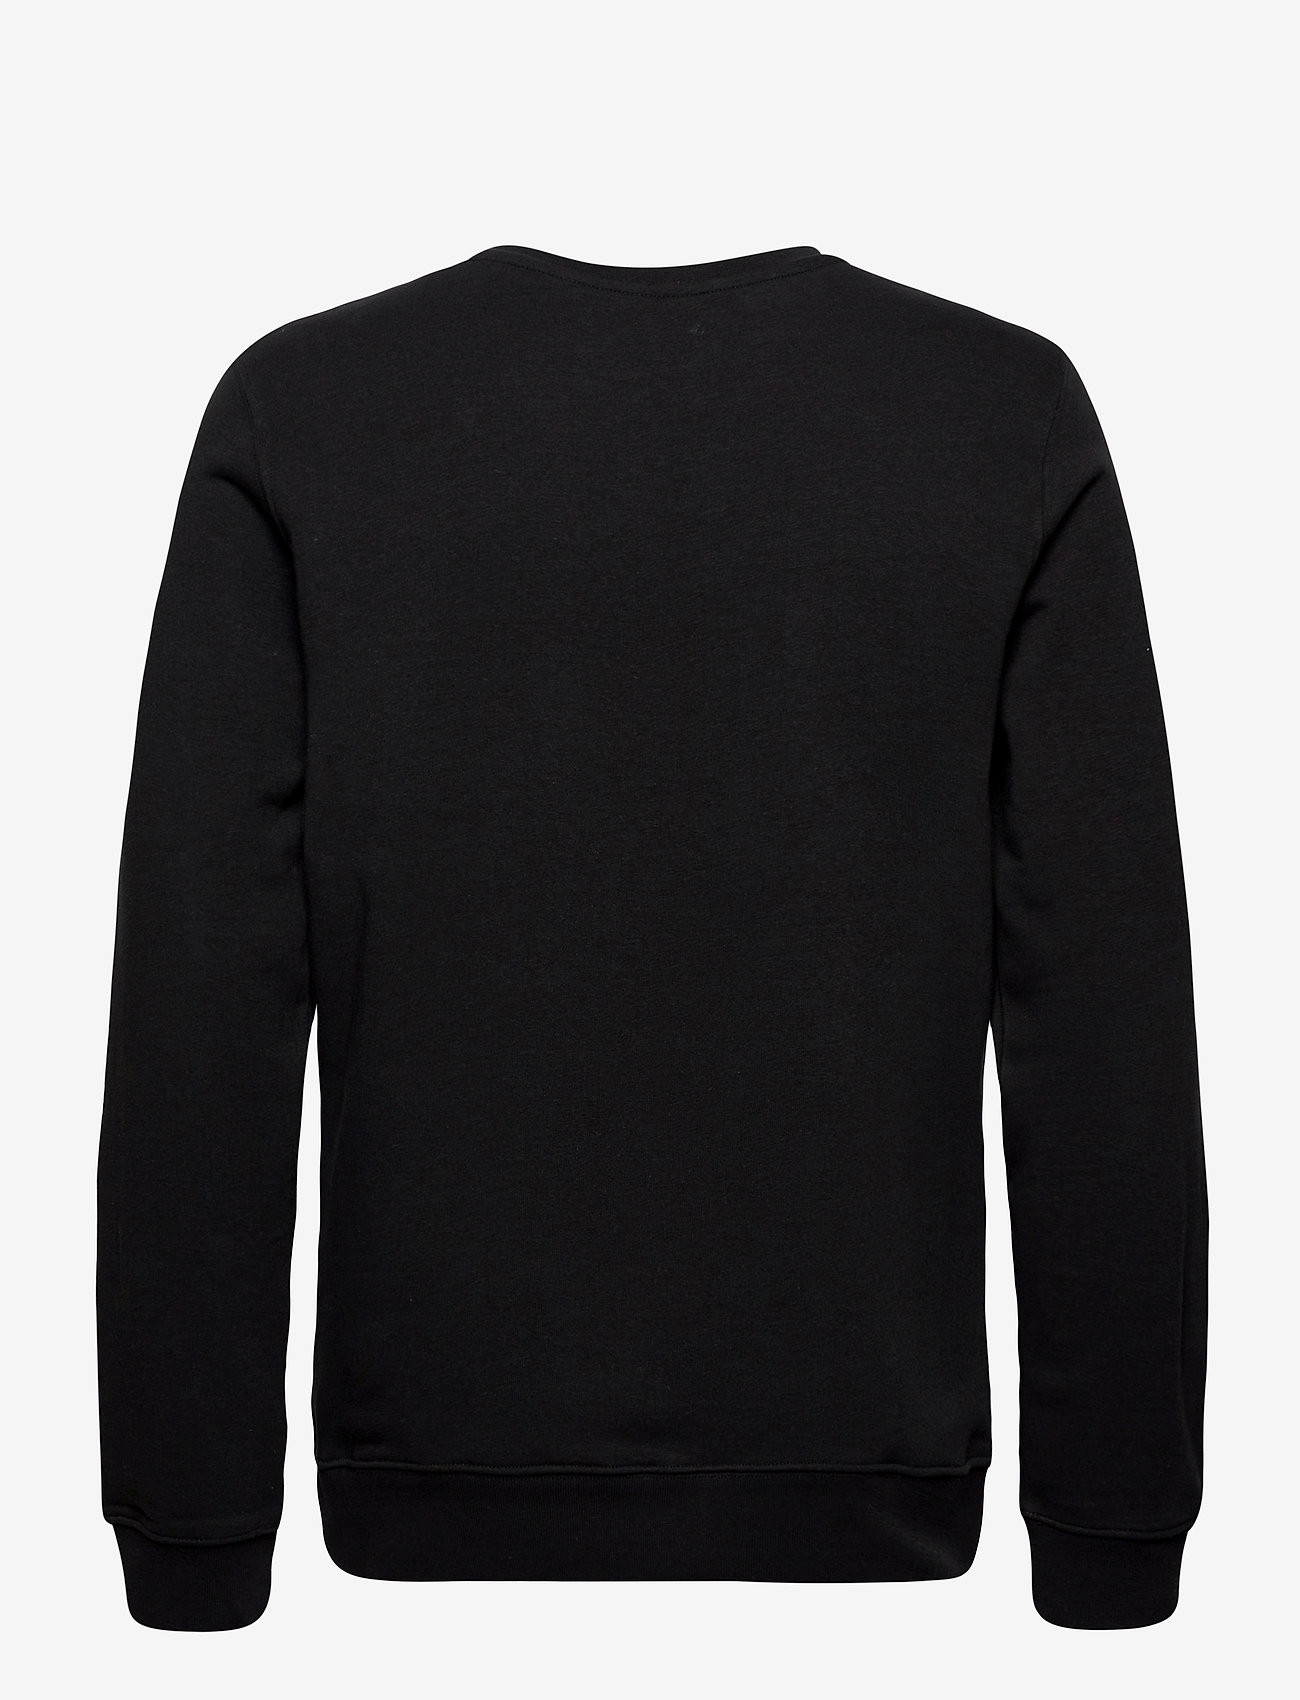 Alban Sweat O'neck (Black) (42 €) - H2O vLpjU